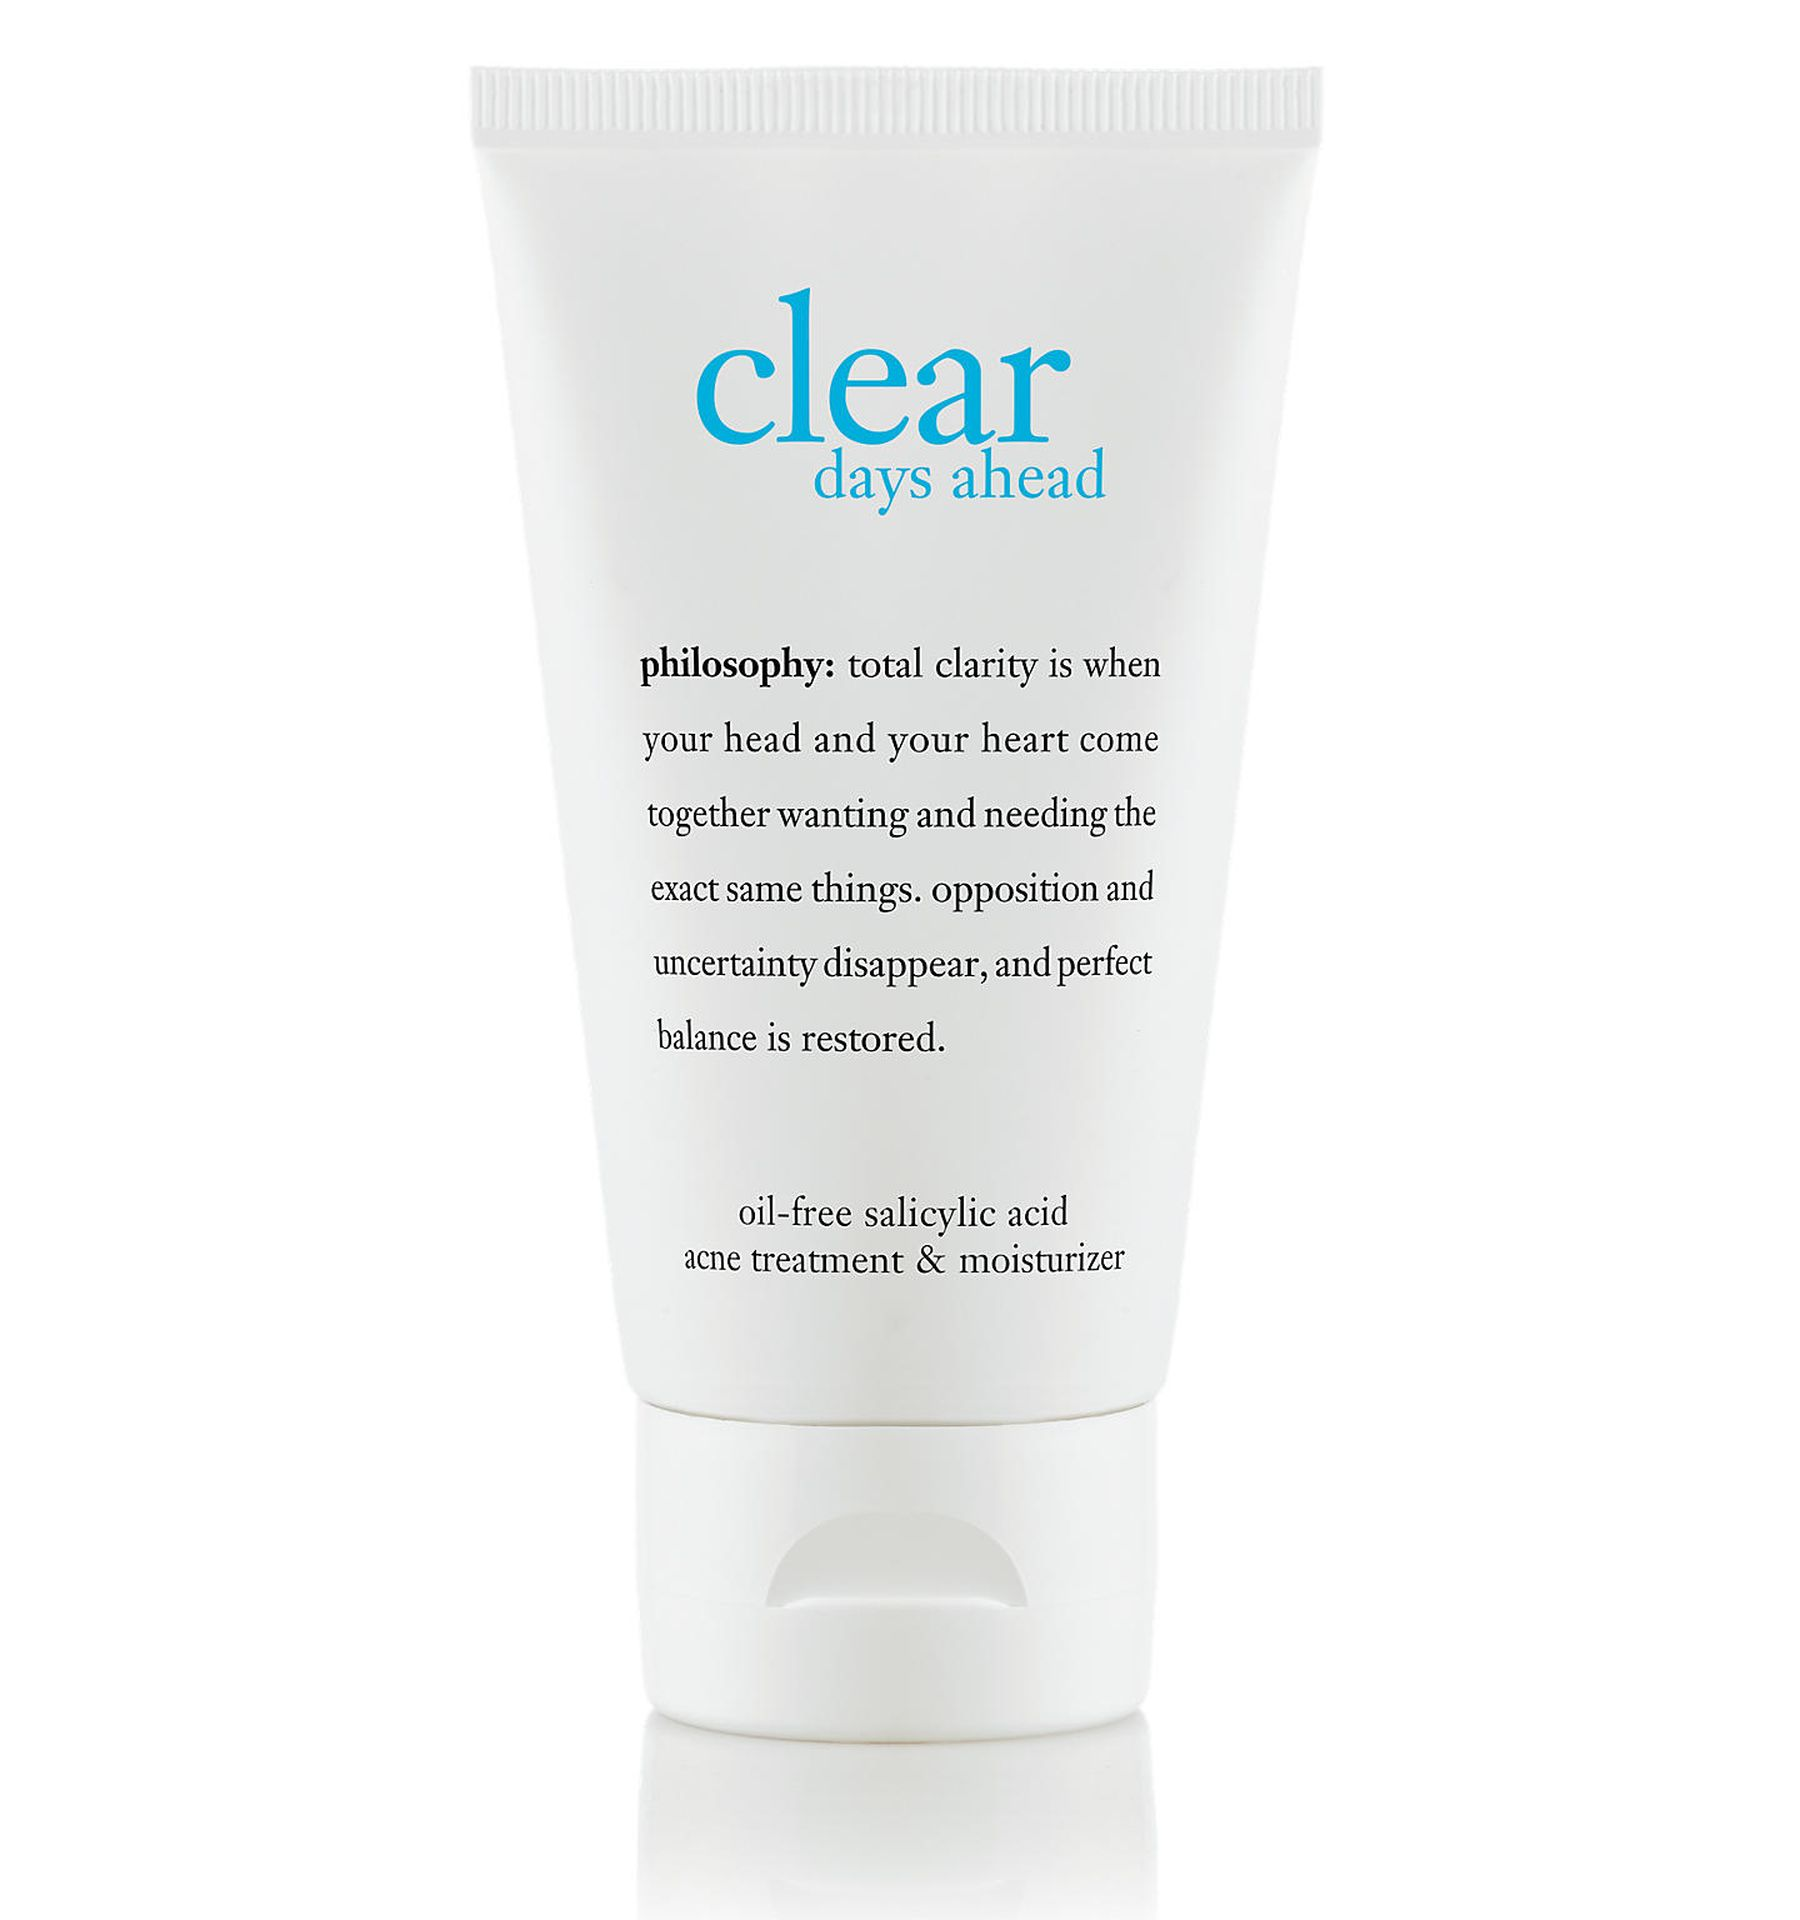 clear days ahead oil-free salicylic acid acne treatment & moisturizer